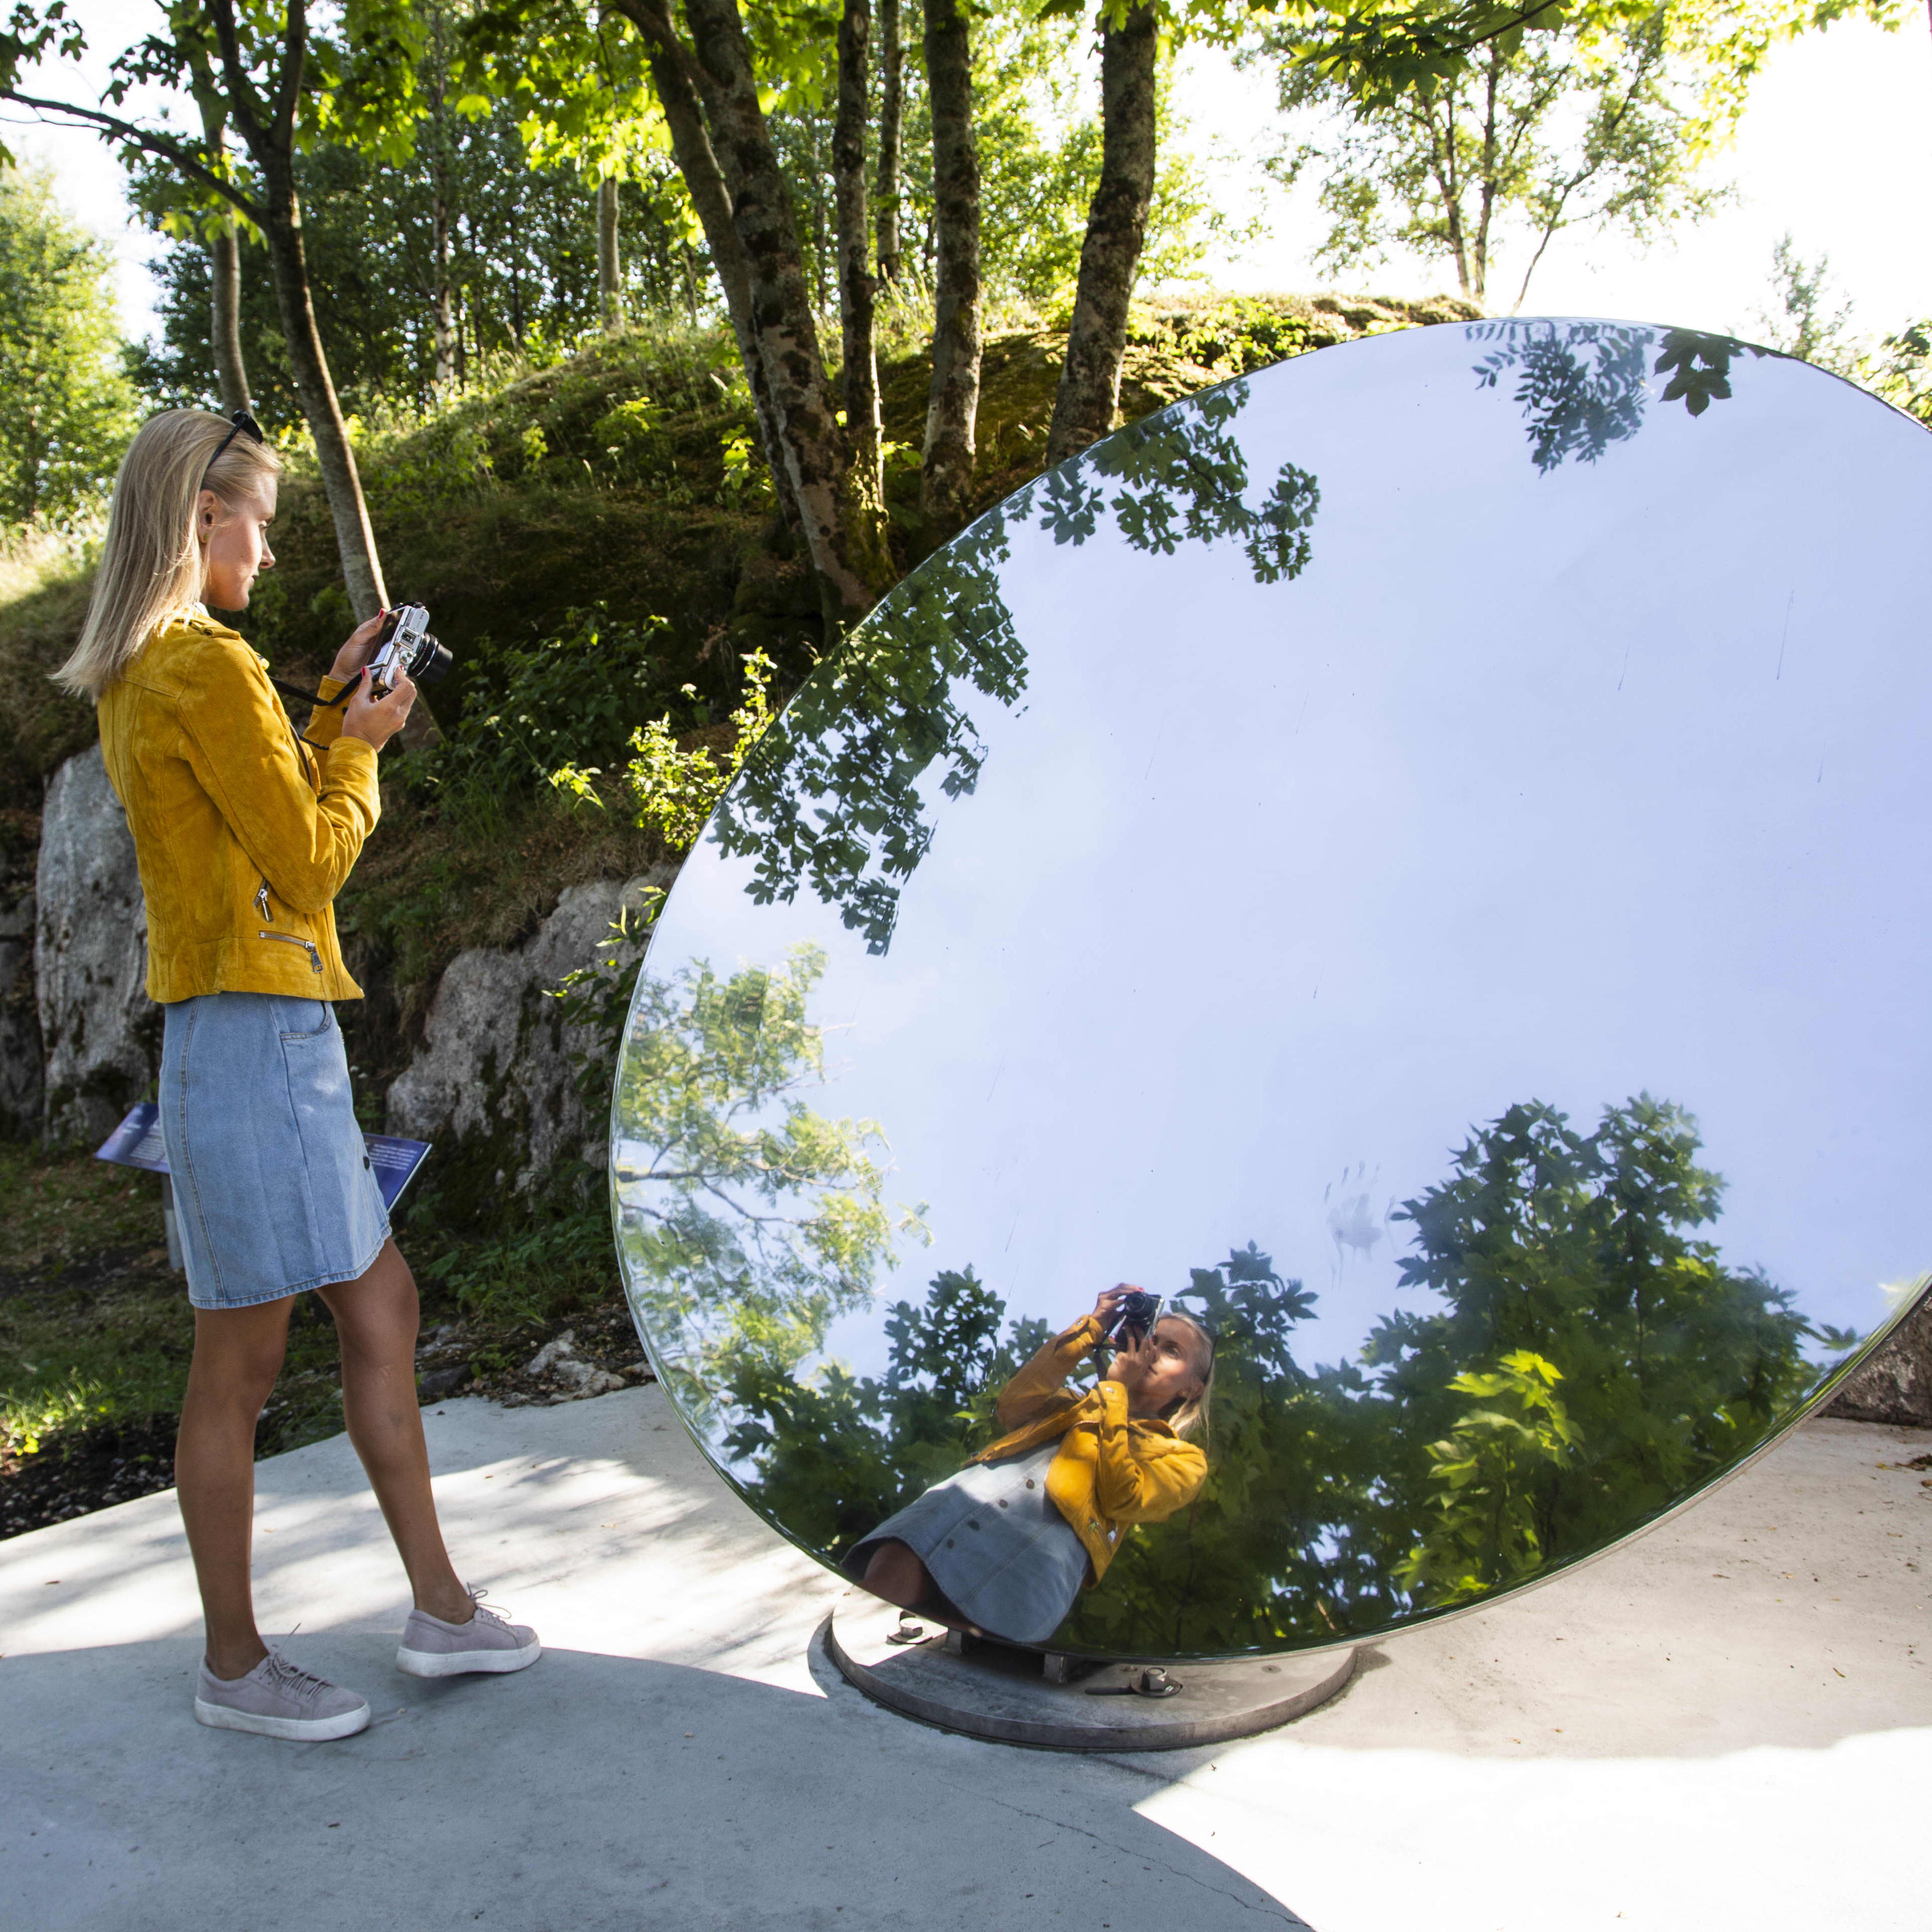 A woman taking a picture of herself in a large round outdoor mirror that reflects her and the green trees and blue sky that surround her.